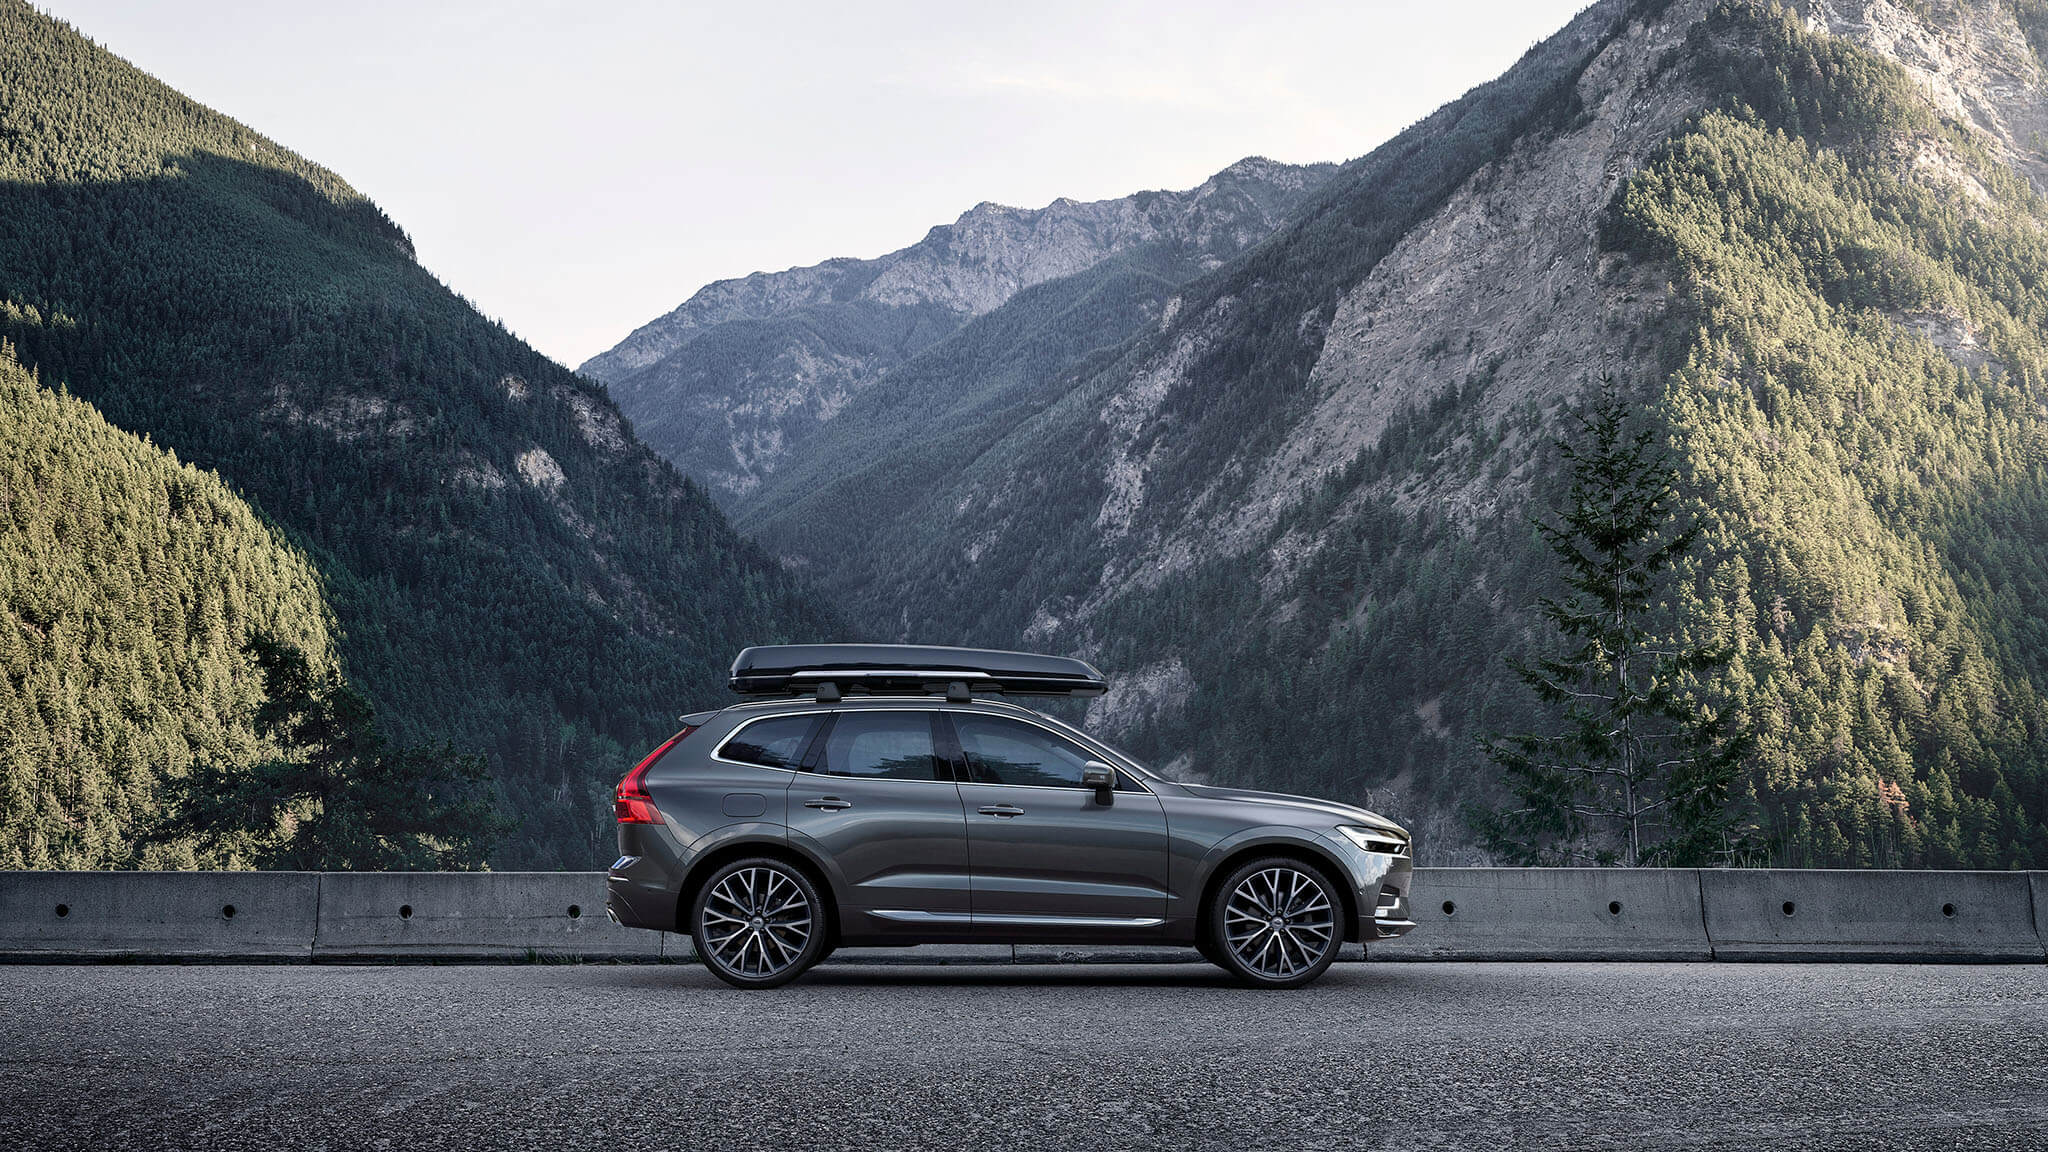 Accessories for the XC60 Image